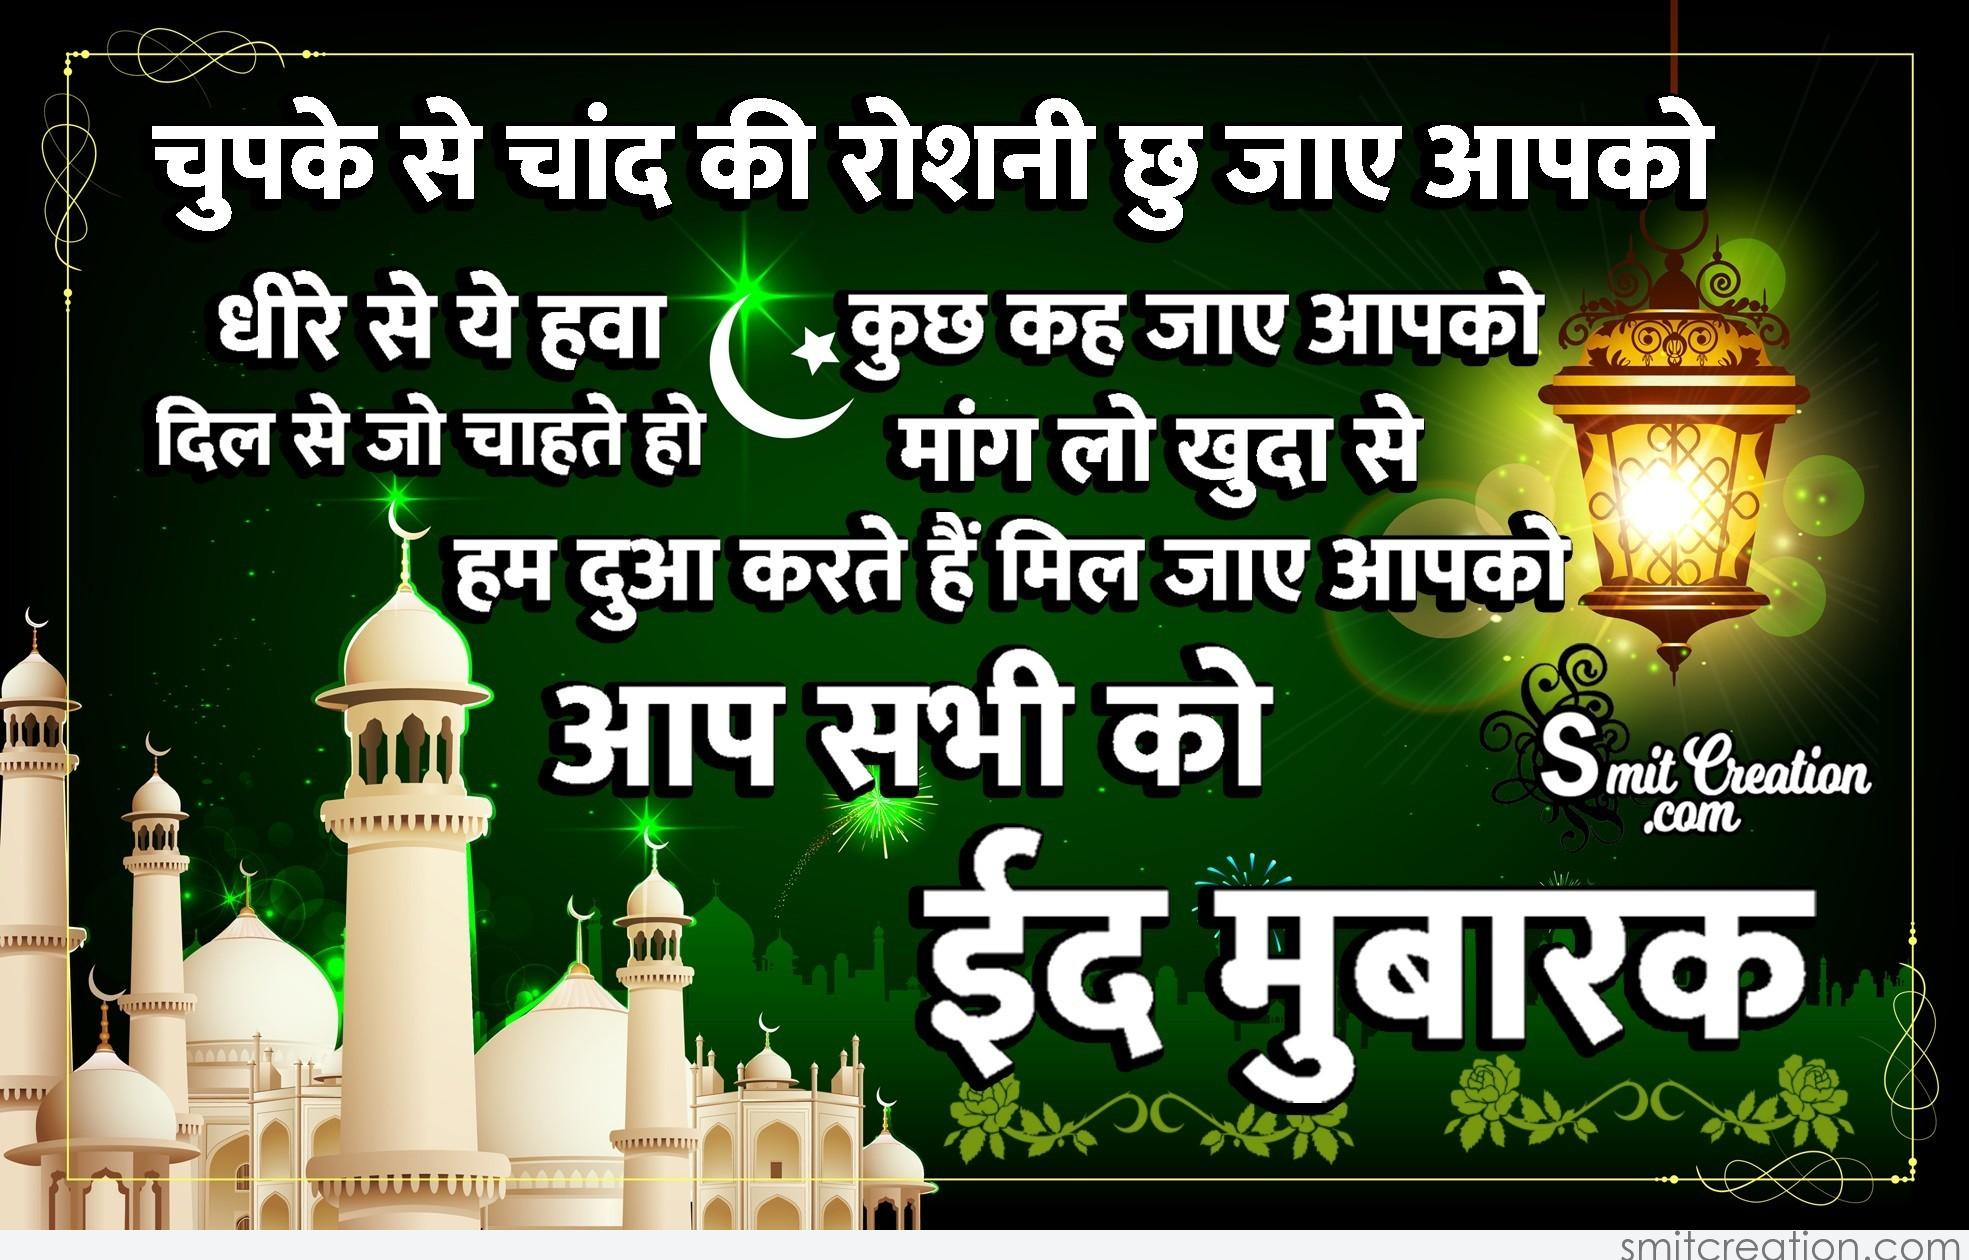 Eid Mubarak Wishes In Hindi Pictures And Graphics Smitcreation